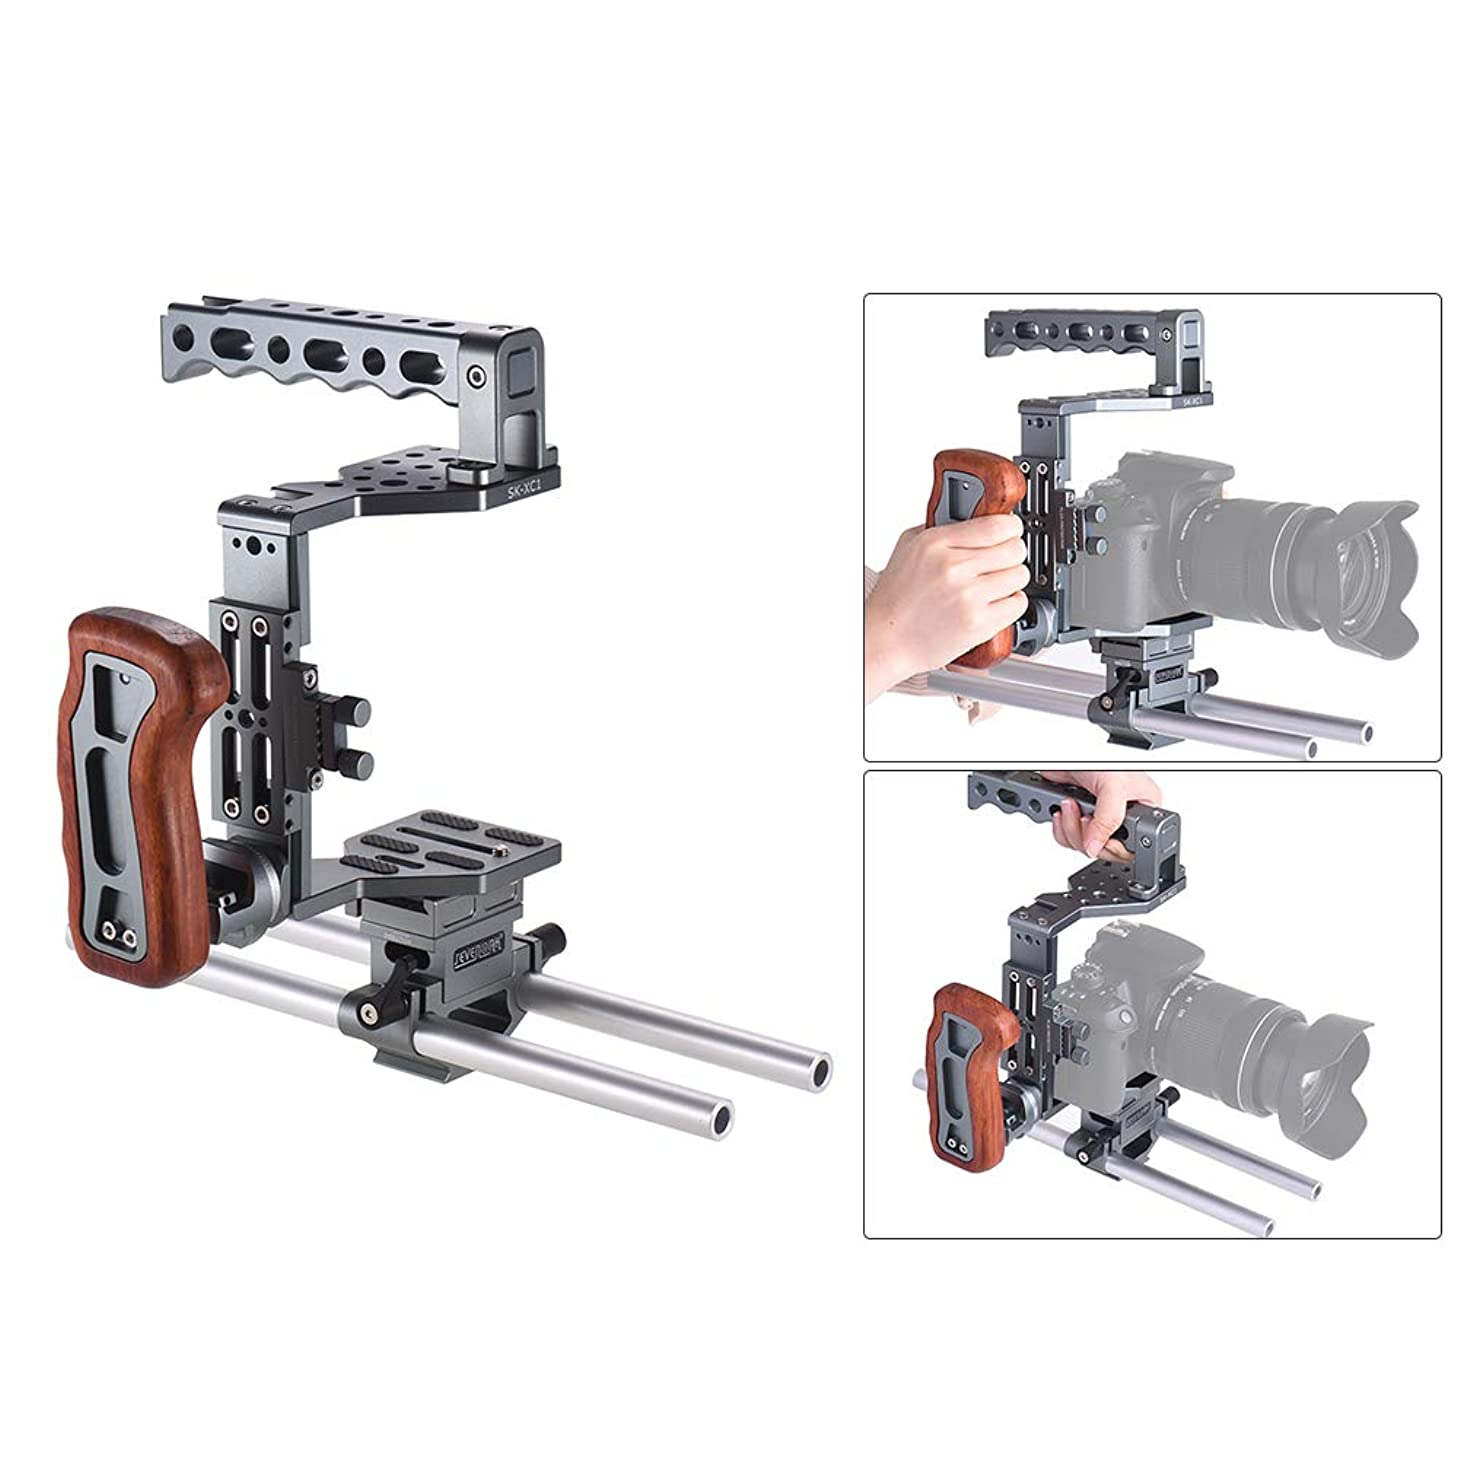 TPOTOO SEVENOAK SK-XC1 Universal DSLR Camera Cage 15mm Rod Baseplate Kit Aluminum Alloy with Wooden Handle Video Film Movie Making Stabilizer System